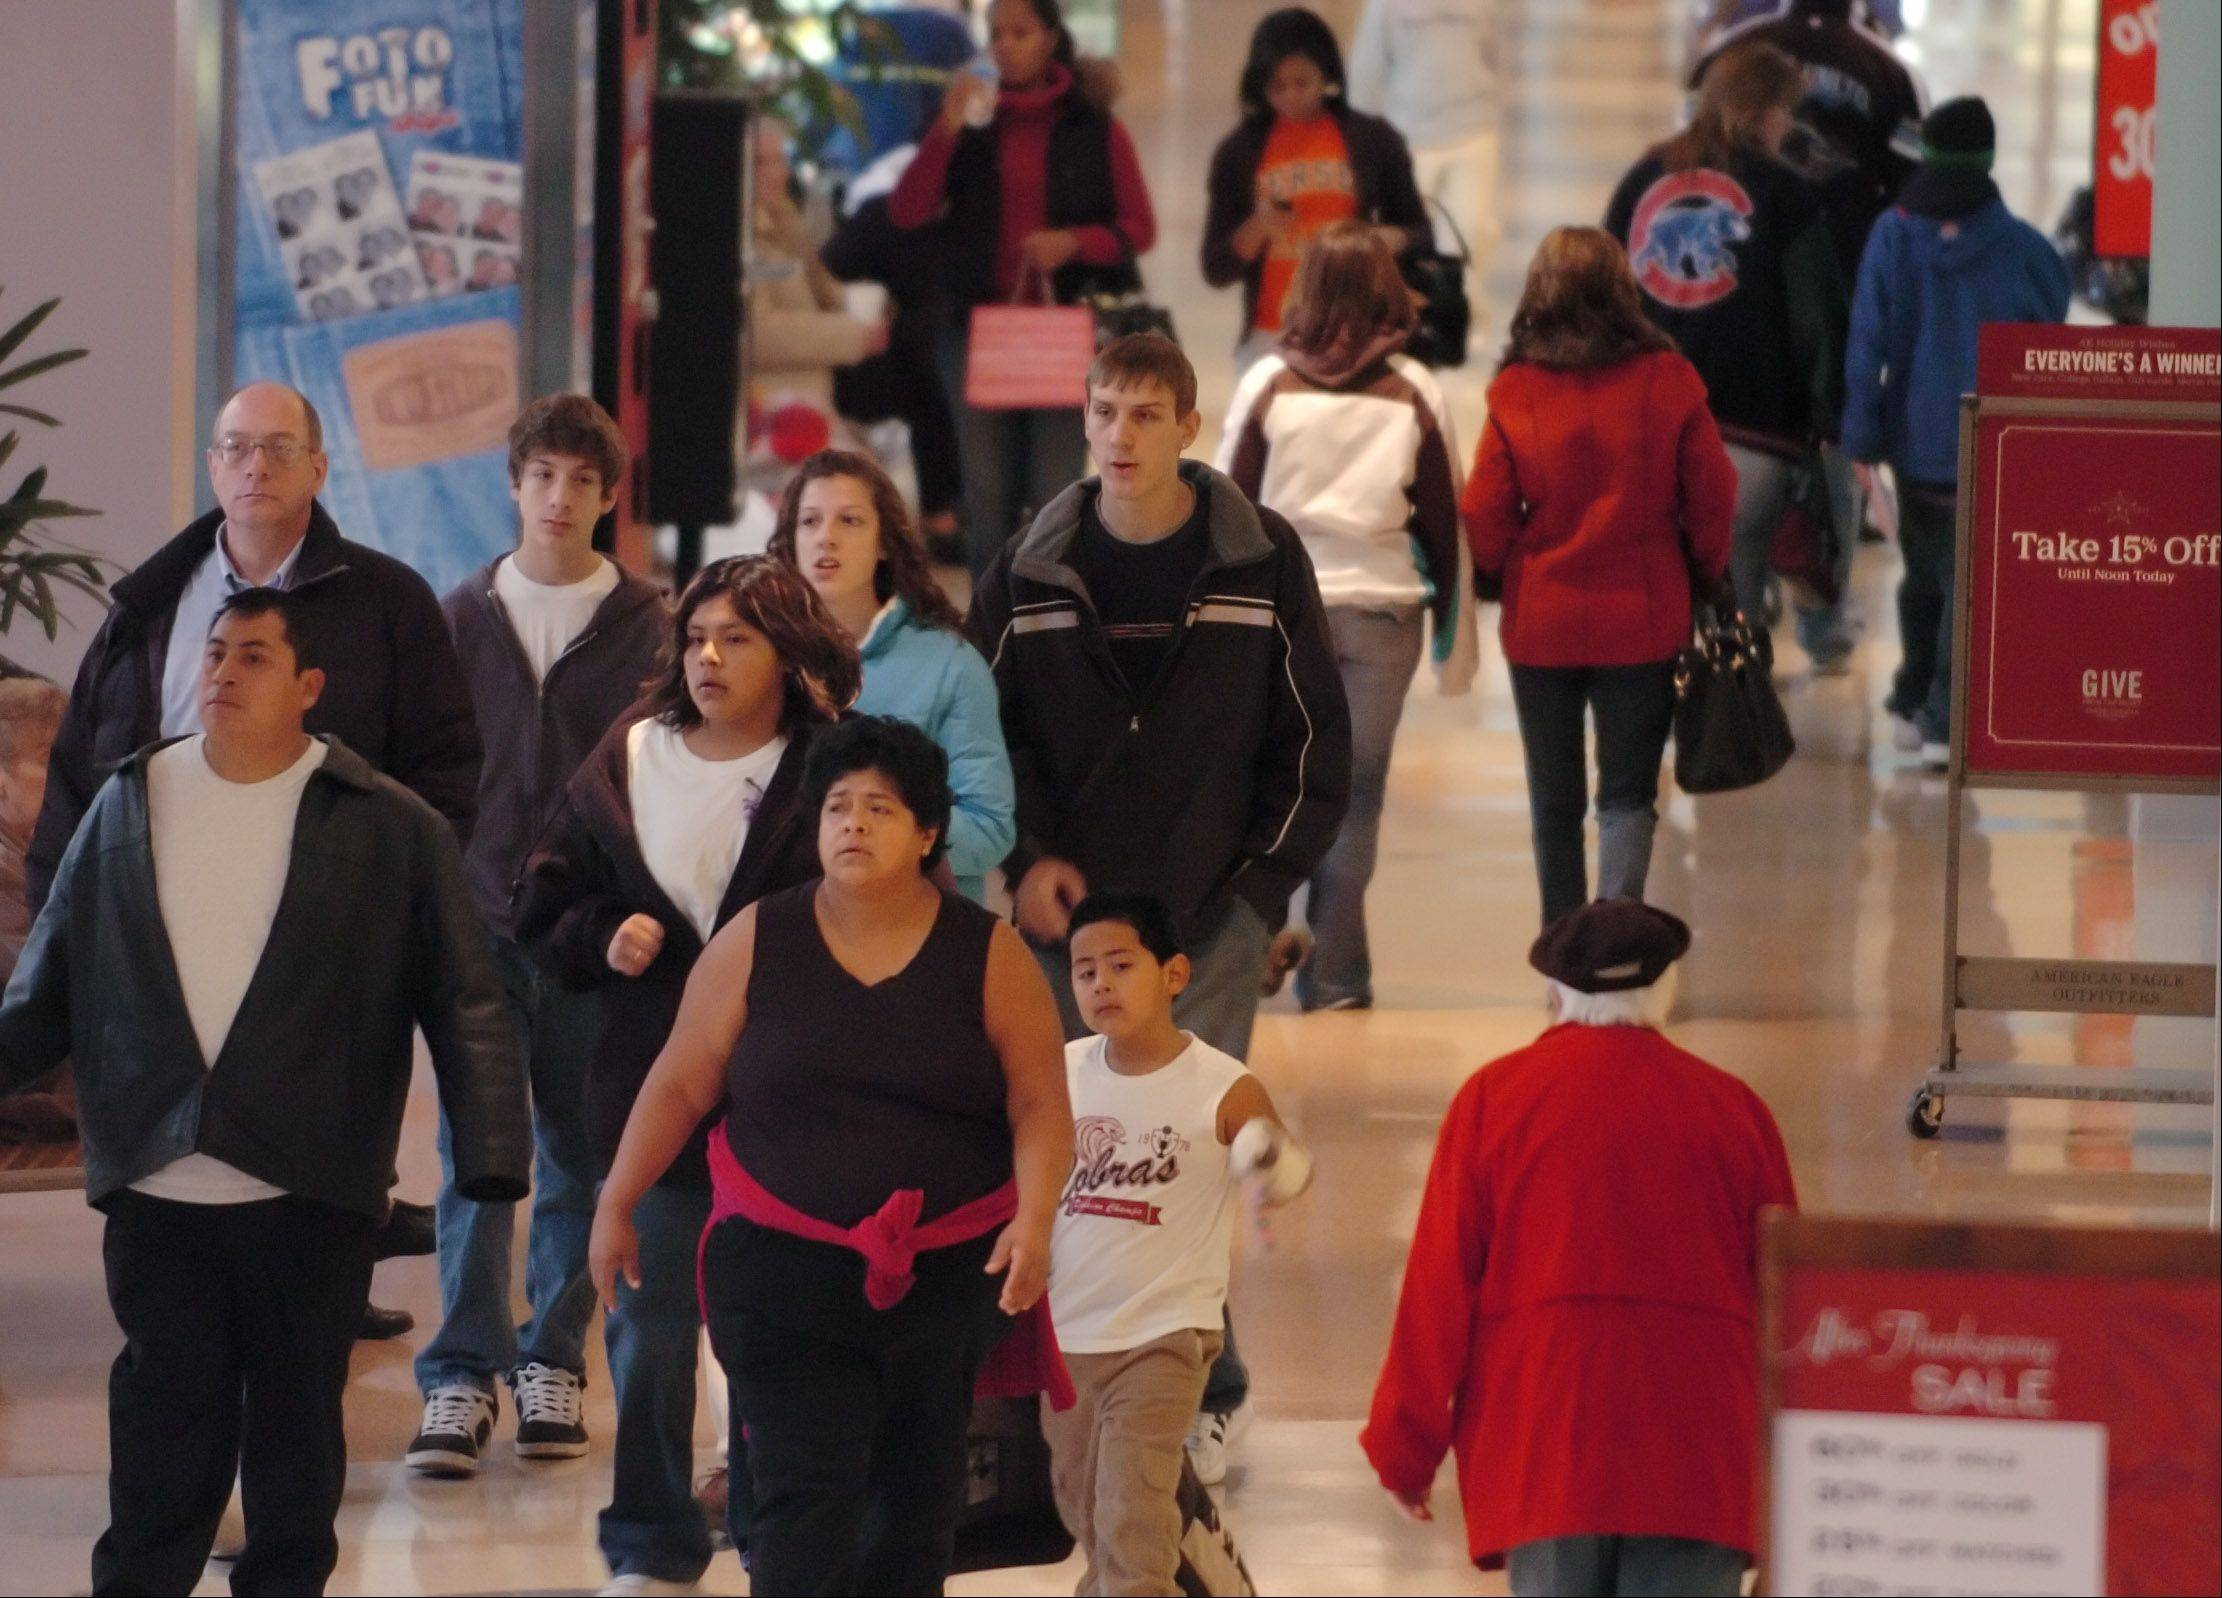 Americans are expected to spend more during what�s traditionally the busiest shopping season of the year, but they�re not exactly ready to shop `til they drop like they have been in the past two years.